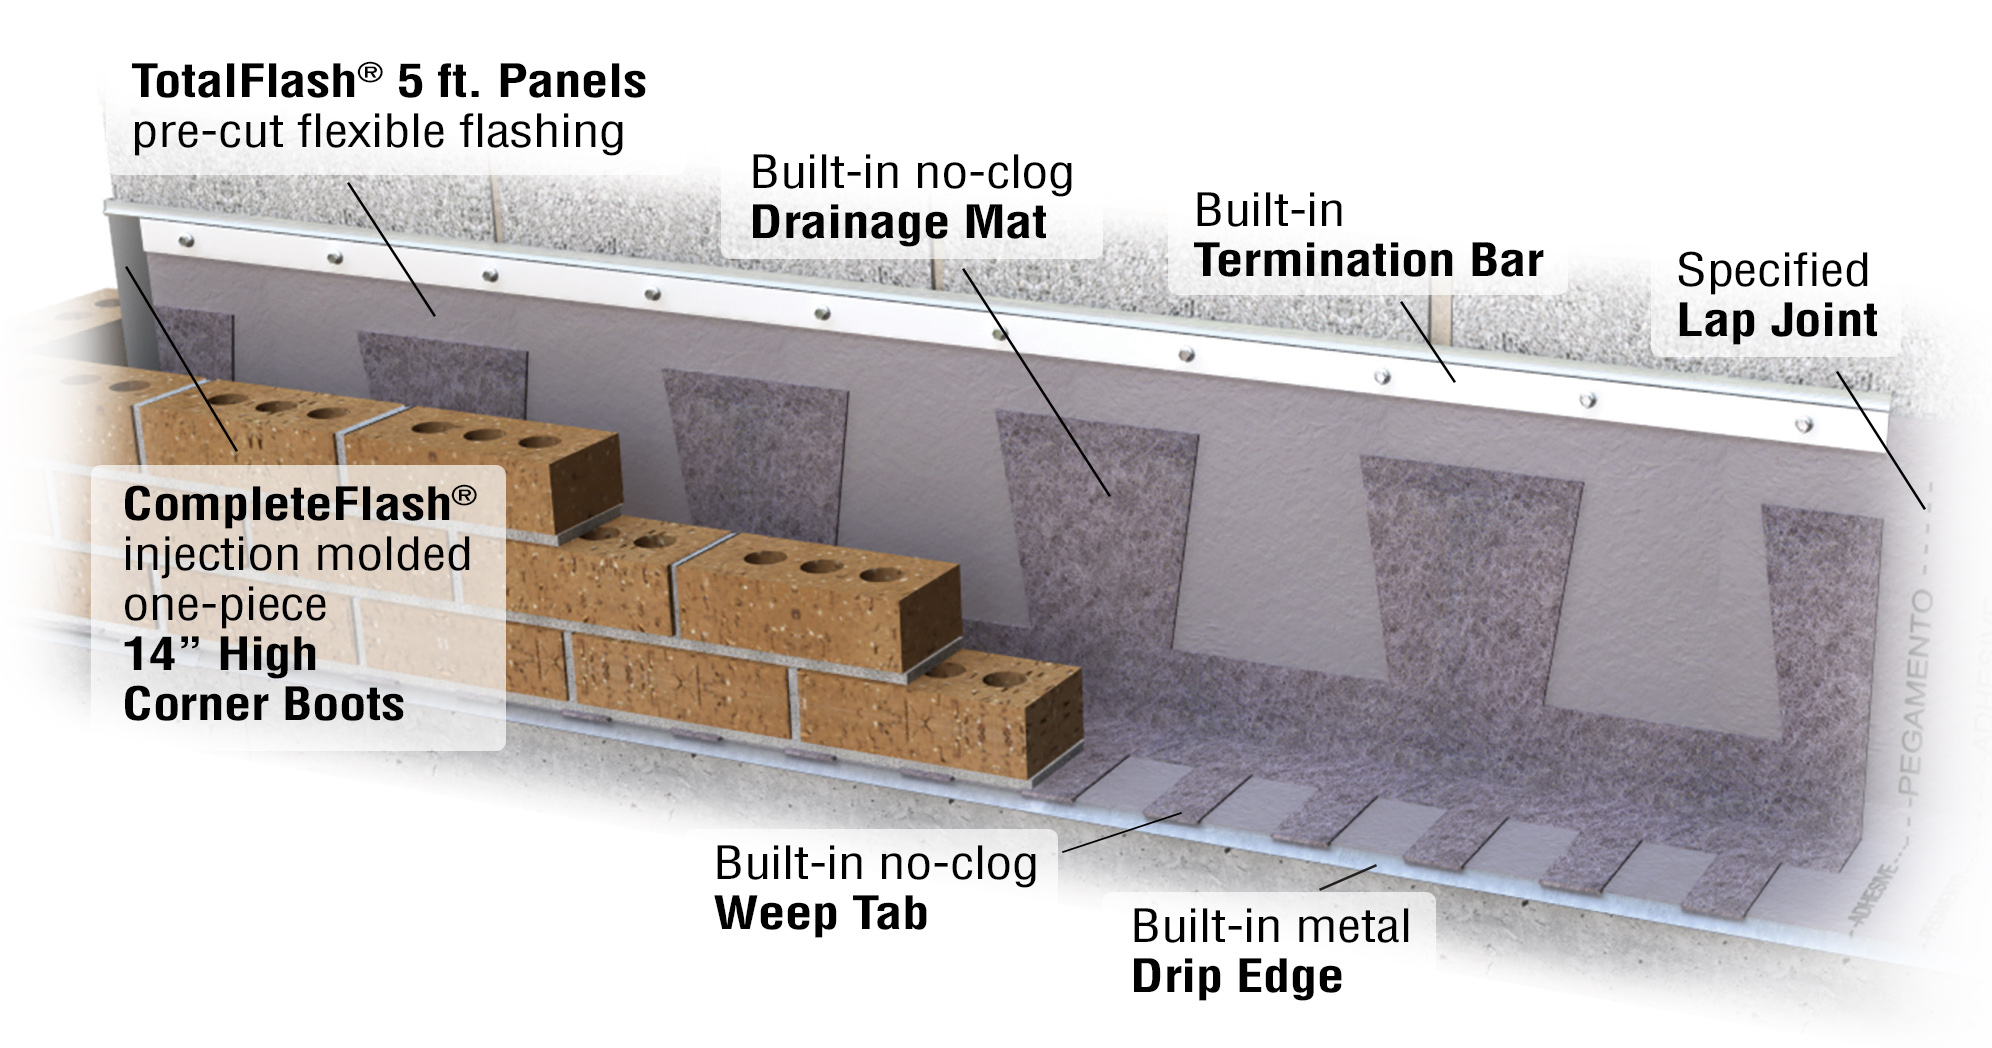 Totalflash Panel Cavity Wall Flashing System Mortar Net